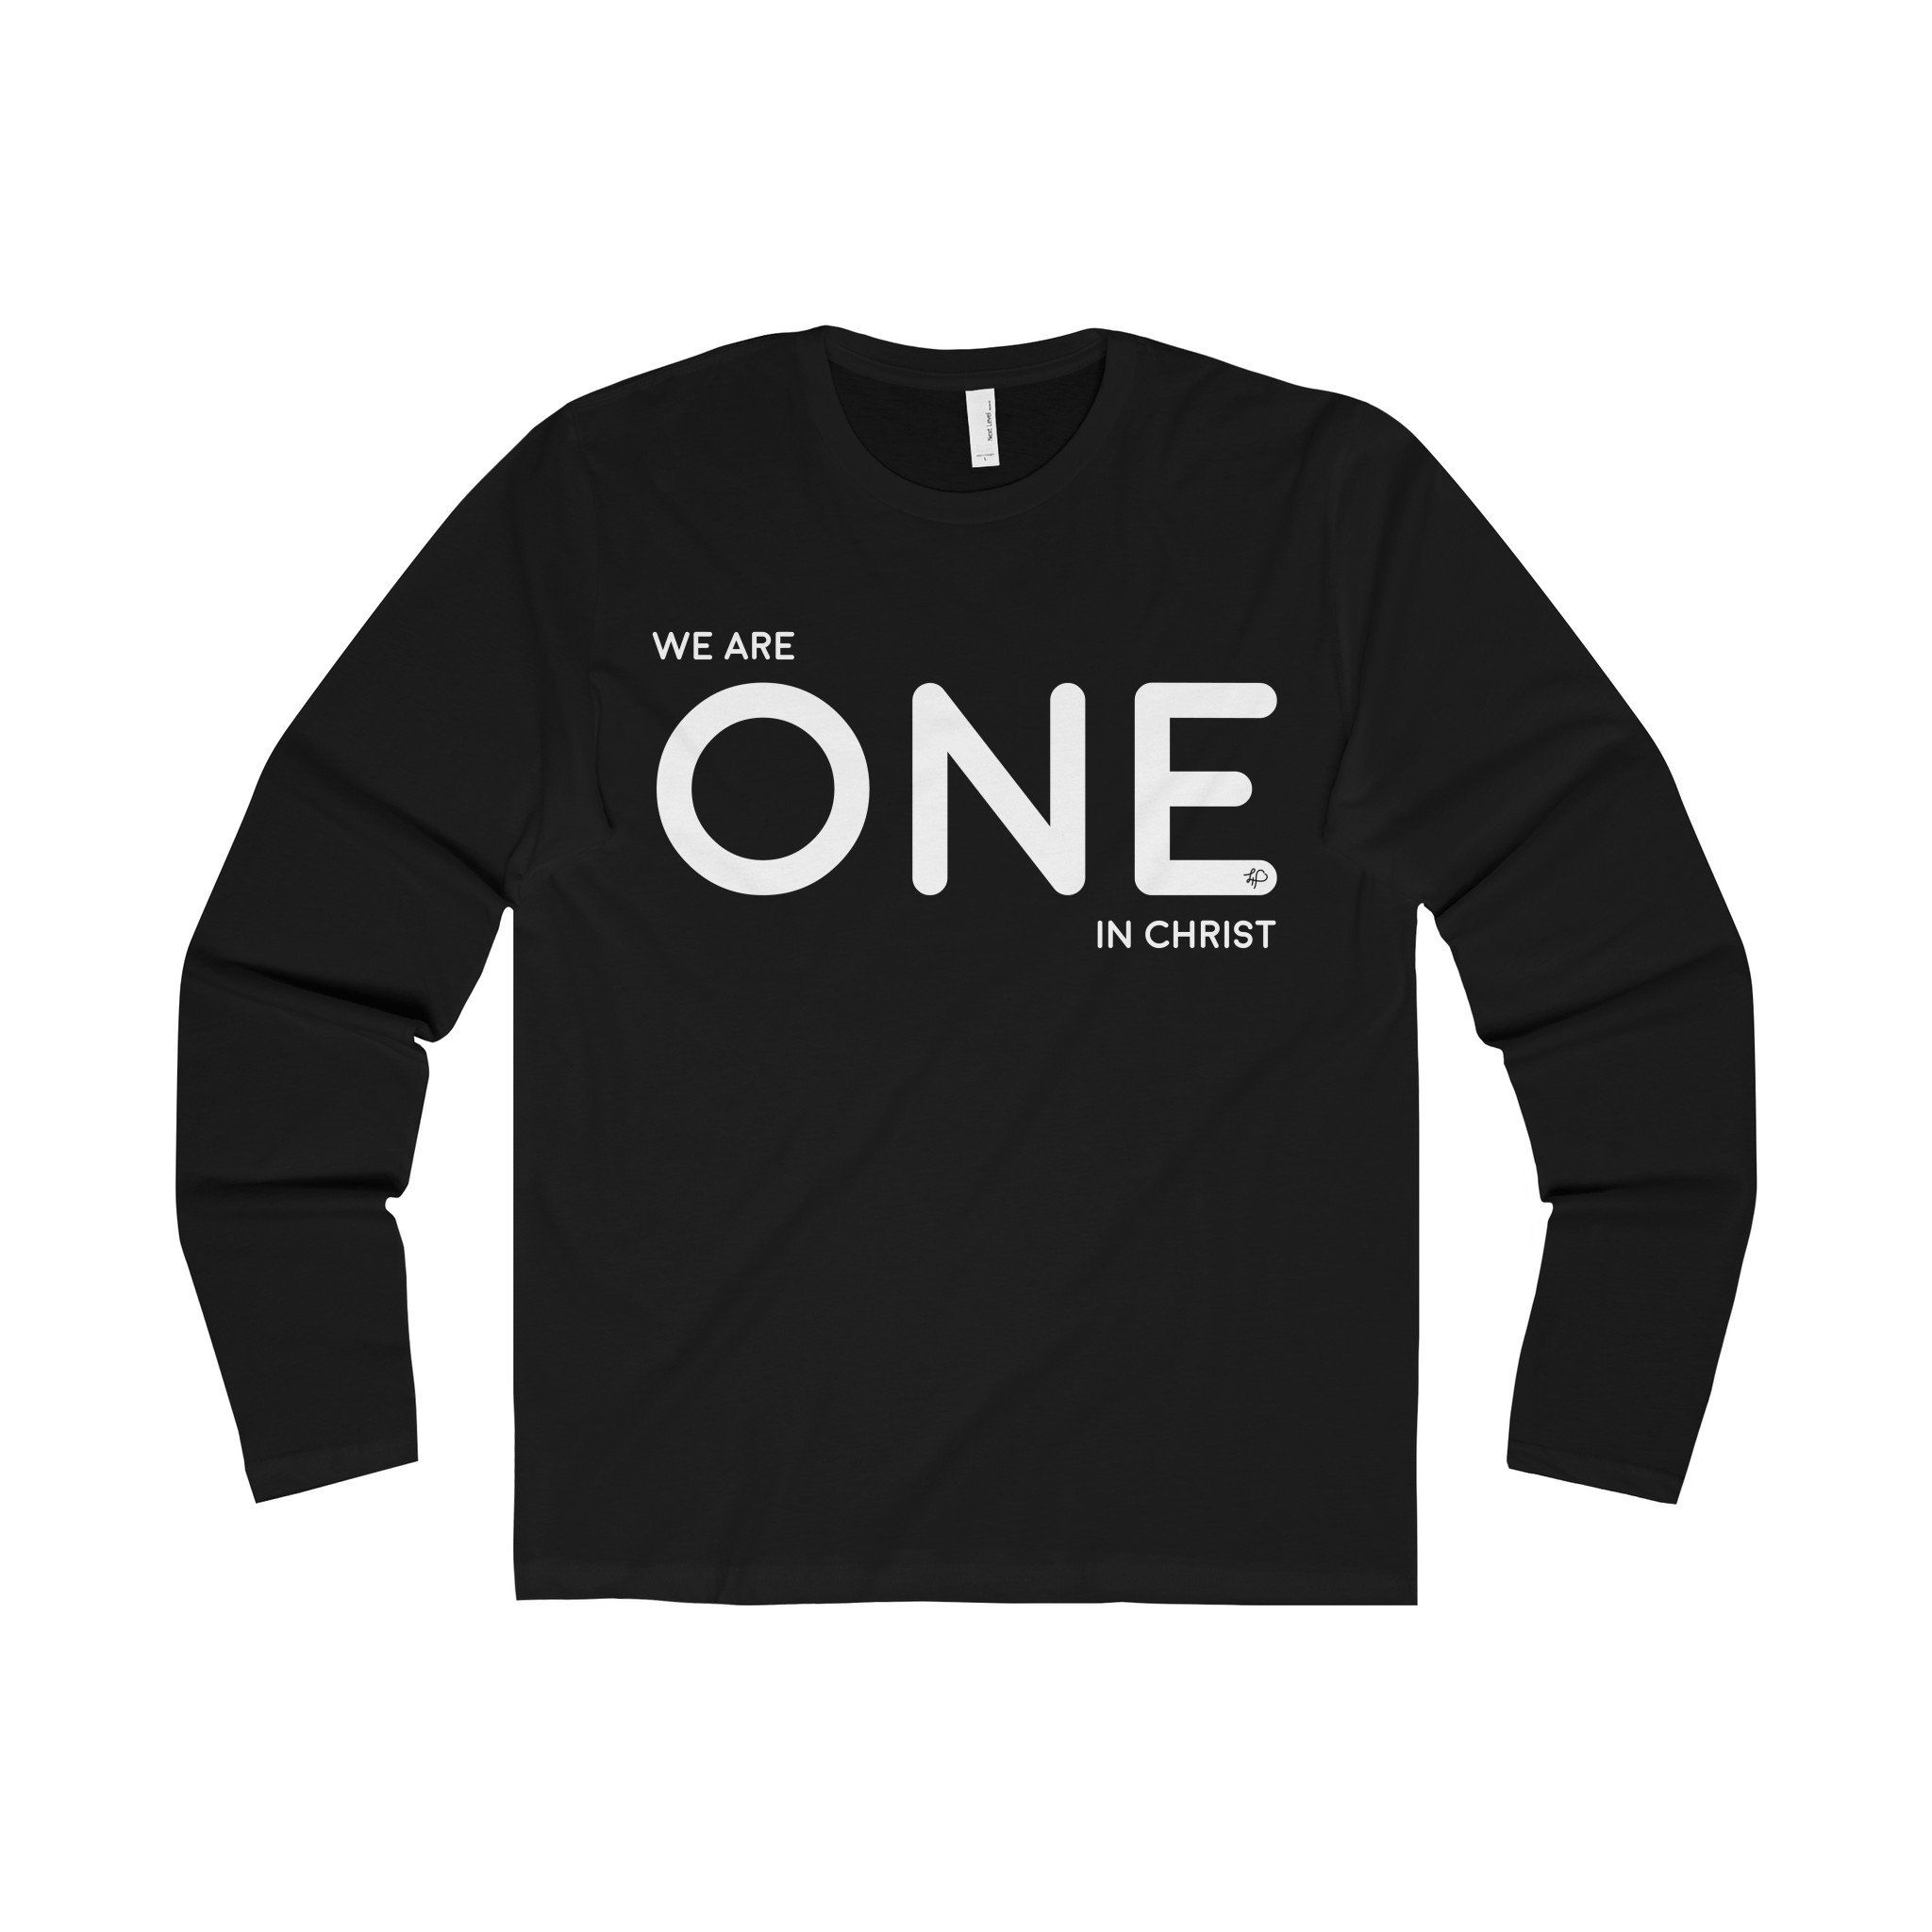 We Are One In Christ Long Sleeve Tee Loveisforeverus Long Sleeve Shirts Long Sleeve Tees Long Sleeve